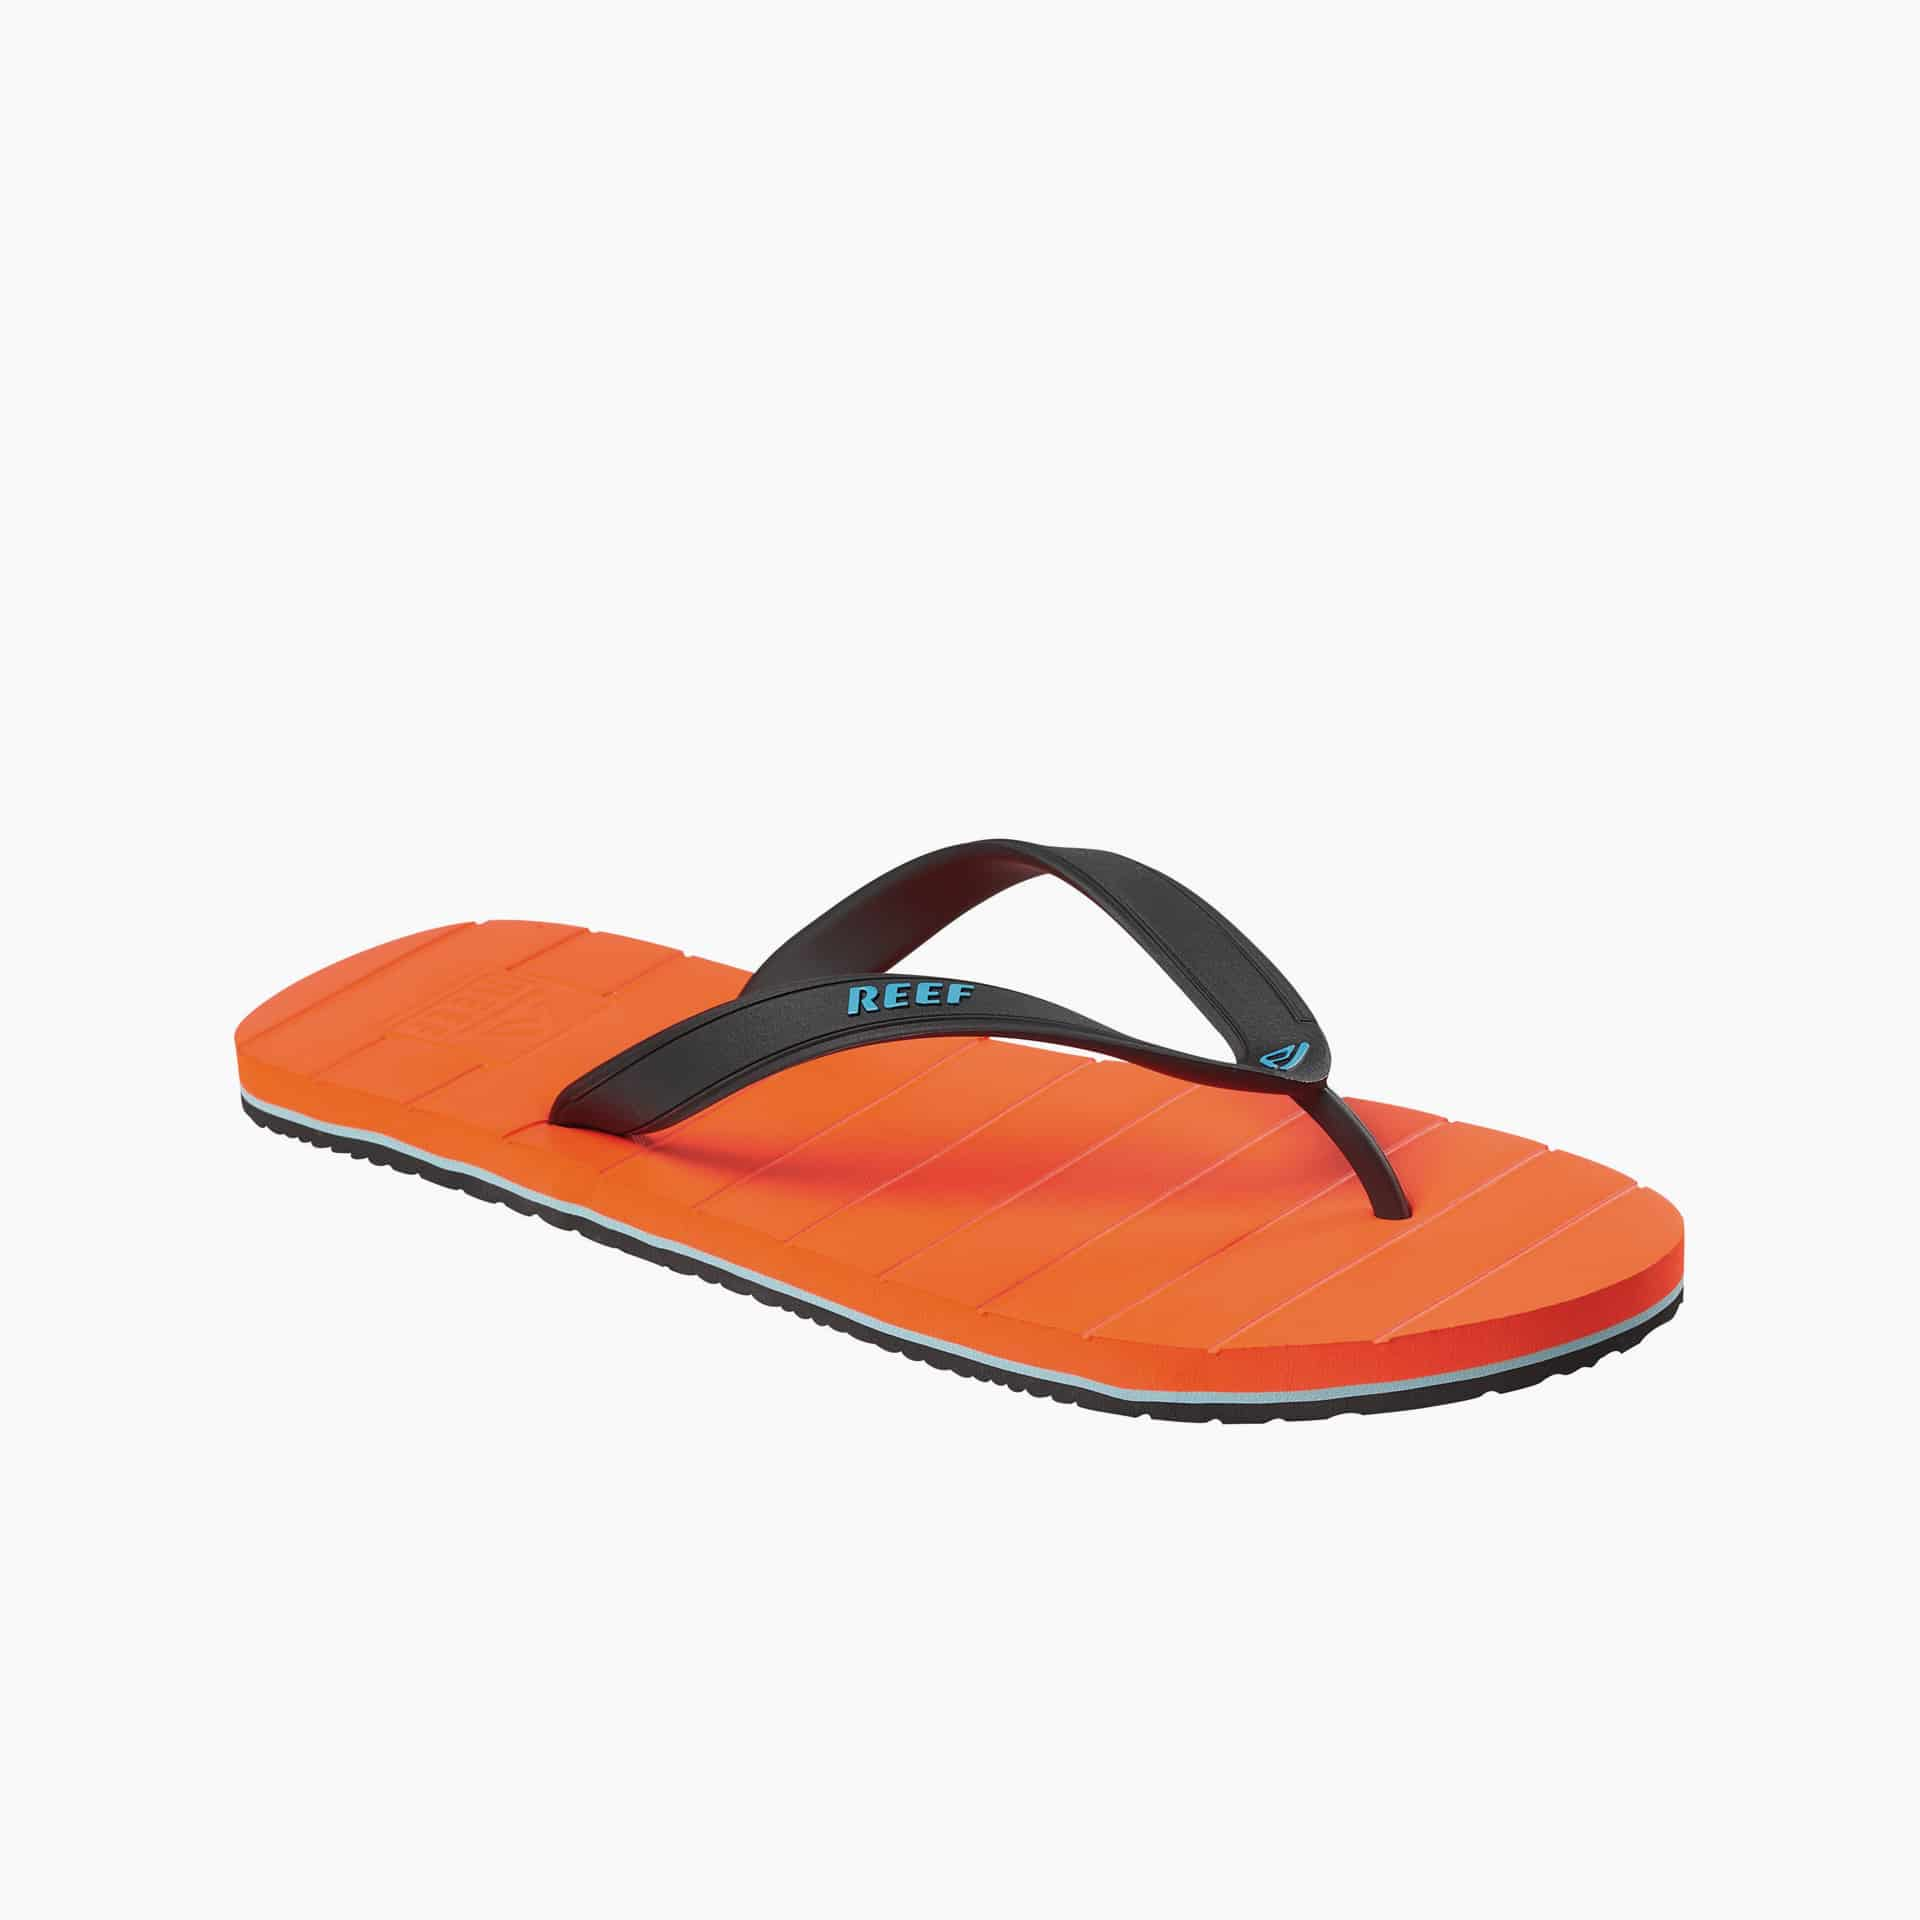 REEF SWITCHFOOT ORANGE